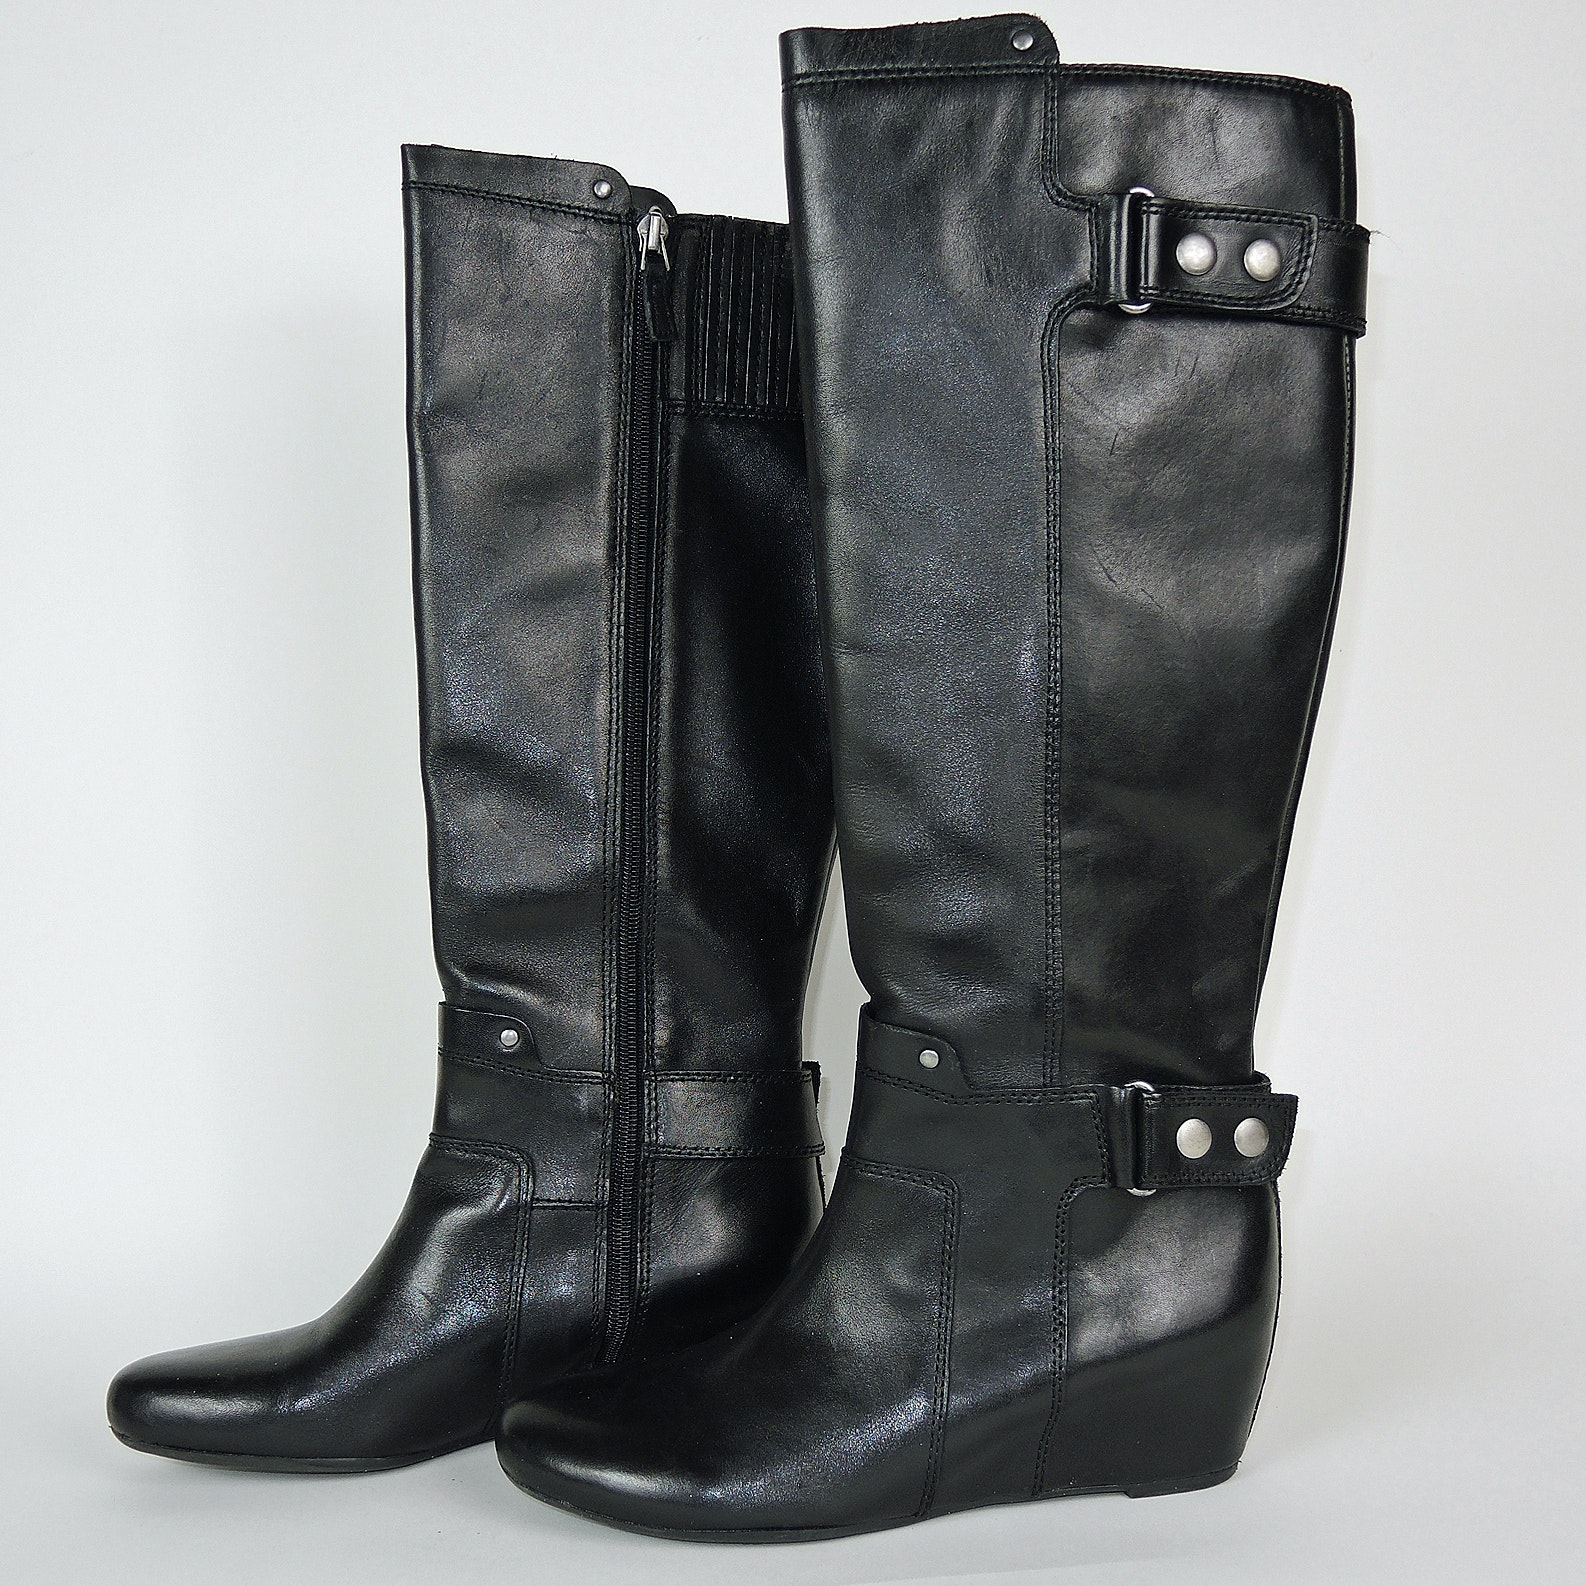 Franco Sarto Designer Black Leather Tall Boots